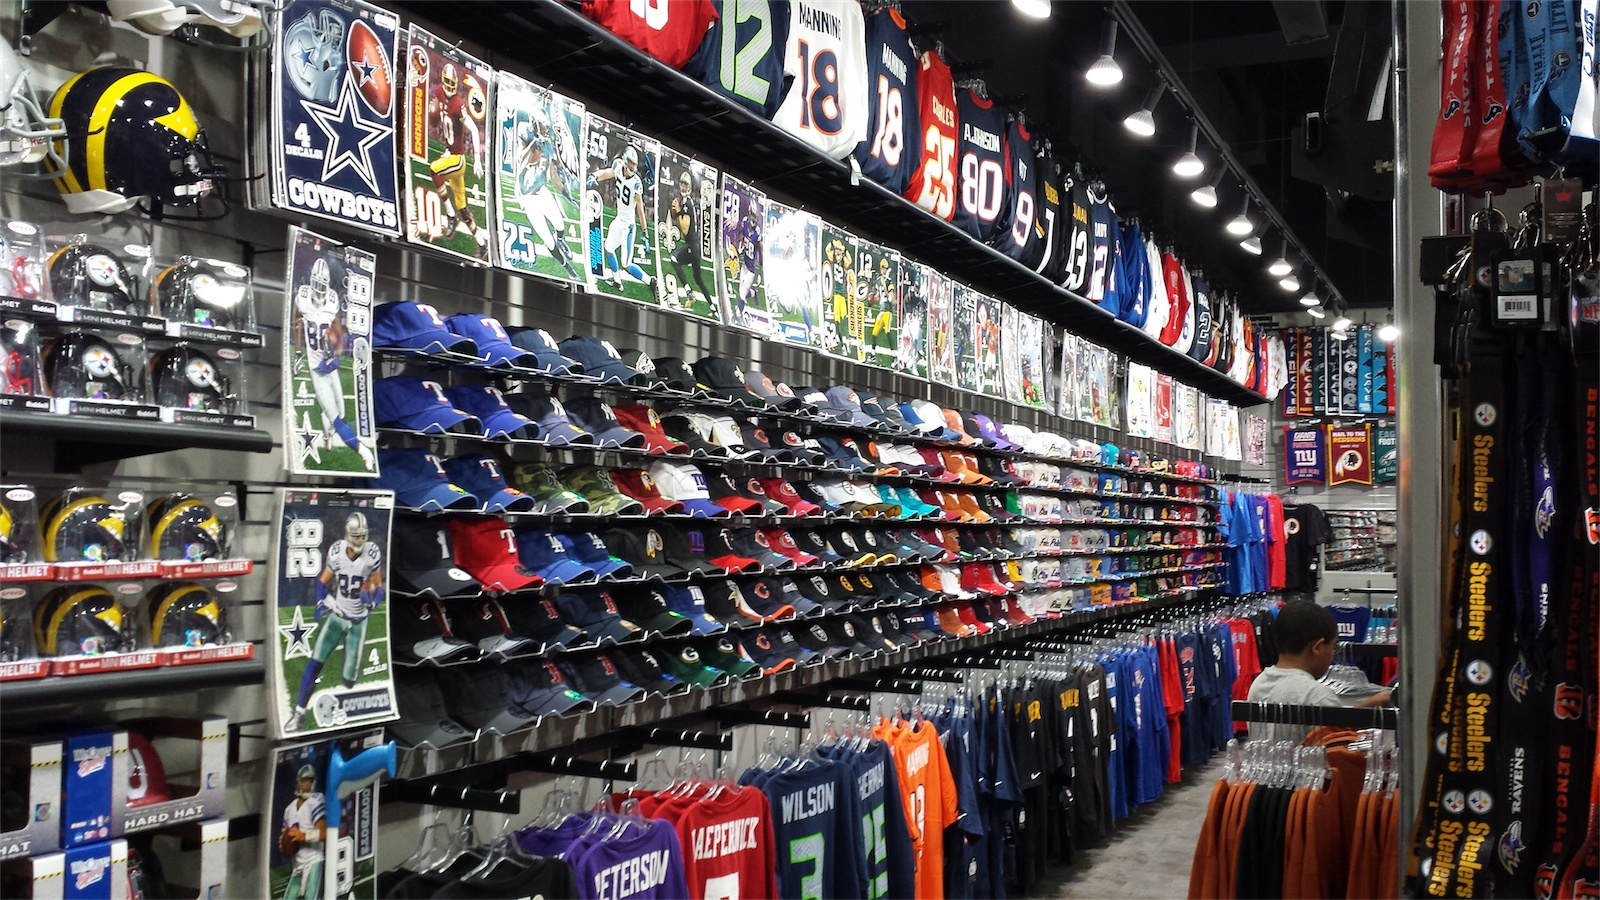 Our NFL Pro Shop offers so much more than just NFL Jerseys, T-Shirts, Hats and Hoodies to show your football fan status in. | While you're checking out our NFL Apparel, be sure to browse our selection of NFL Memorabilia, too. We've got NFL Helmets of all sizes, including Autographed Helmets from top players.